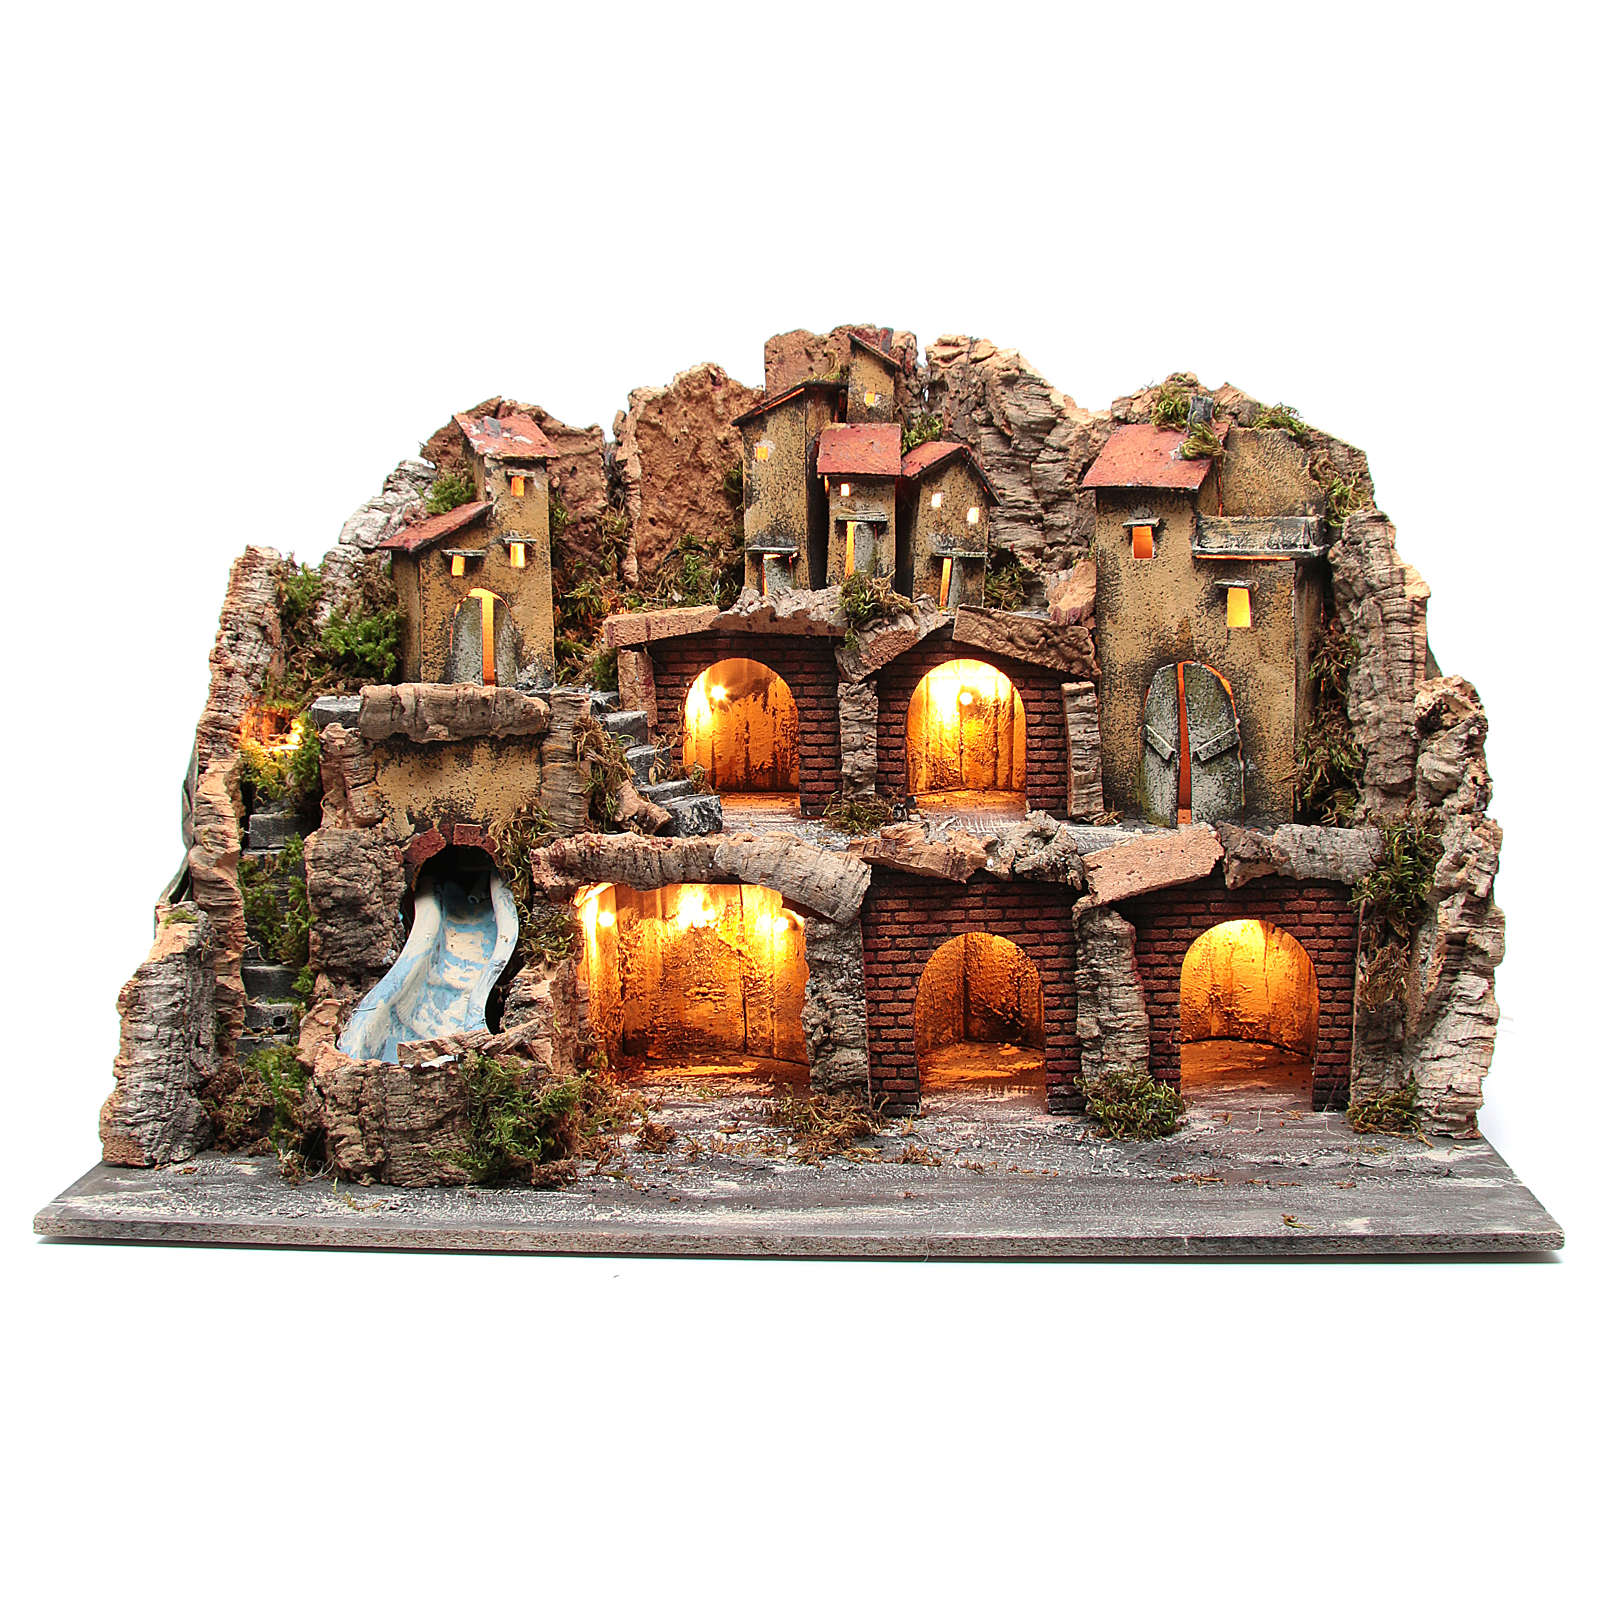 Nativity scene setting with rocky landscape and waterfall 4